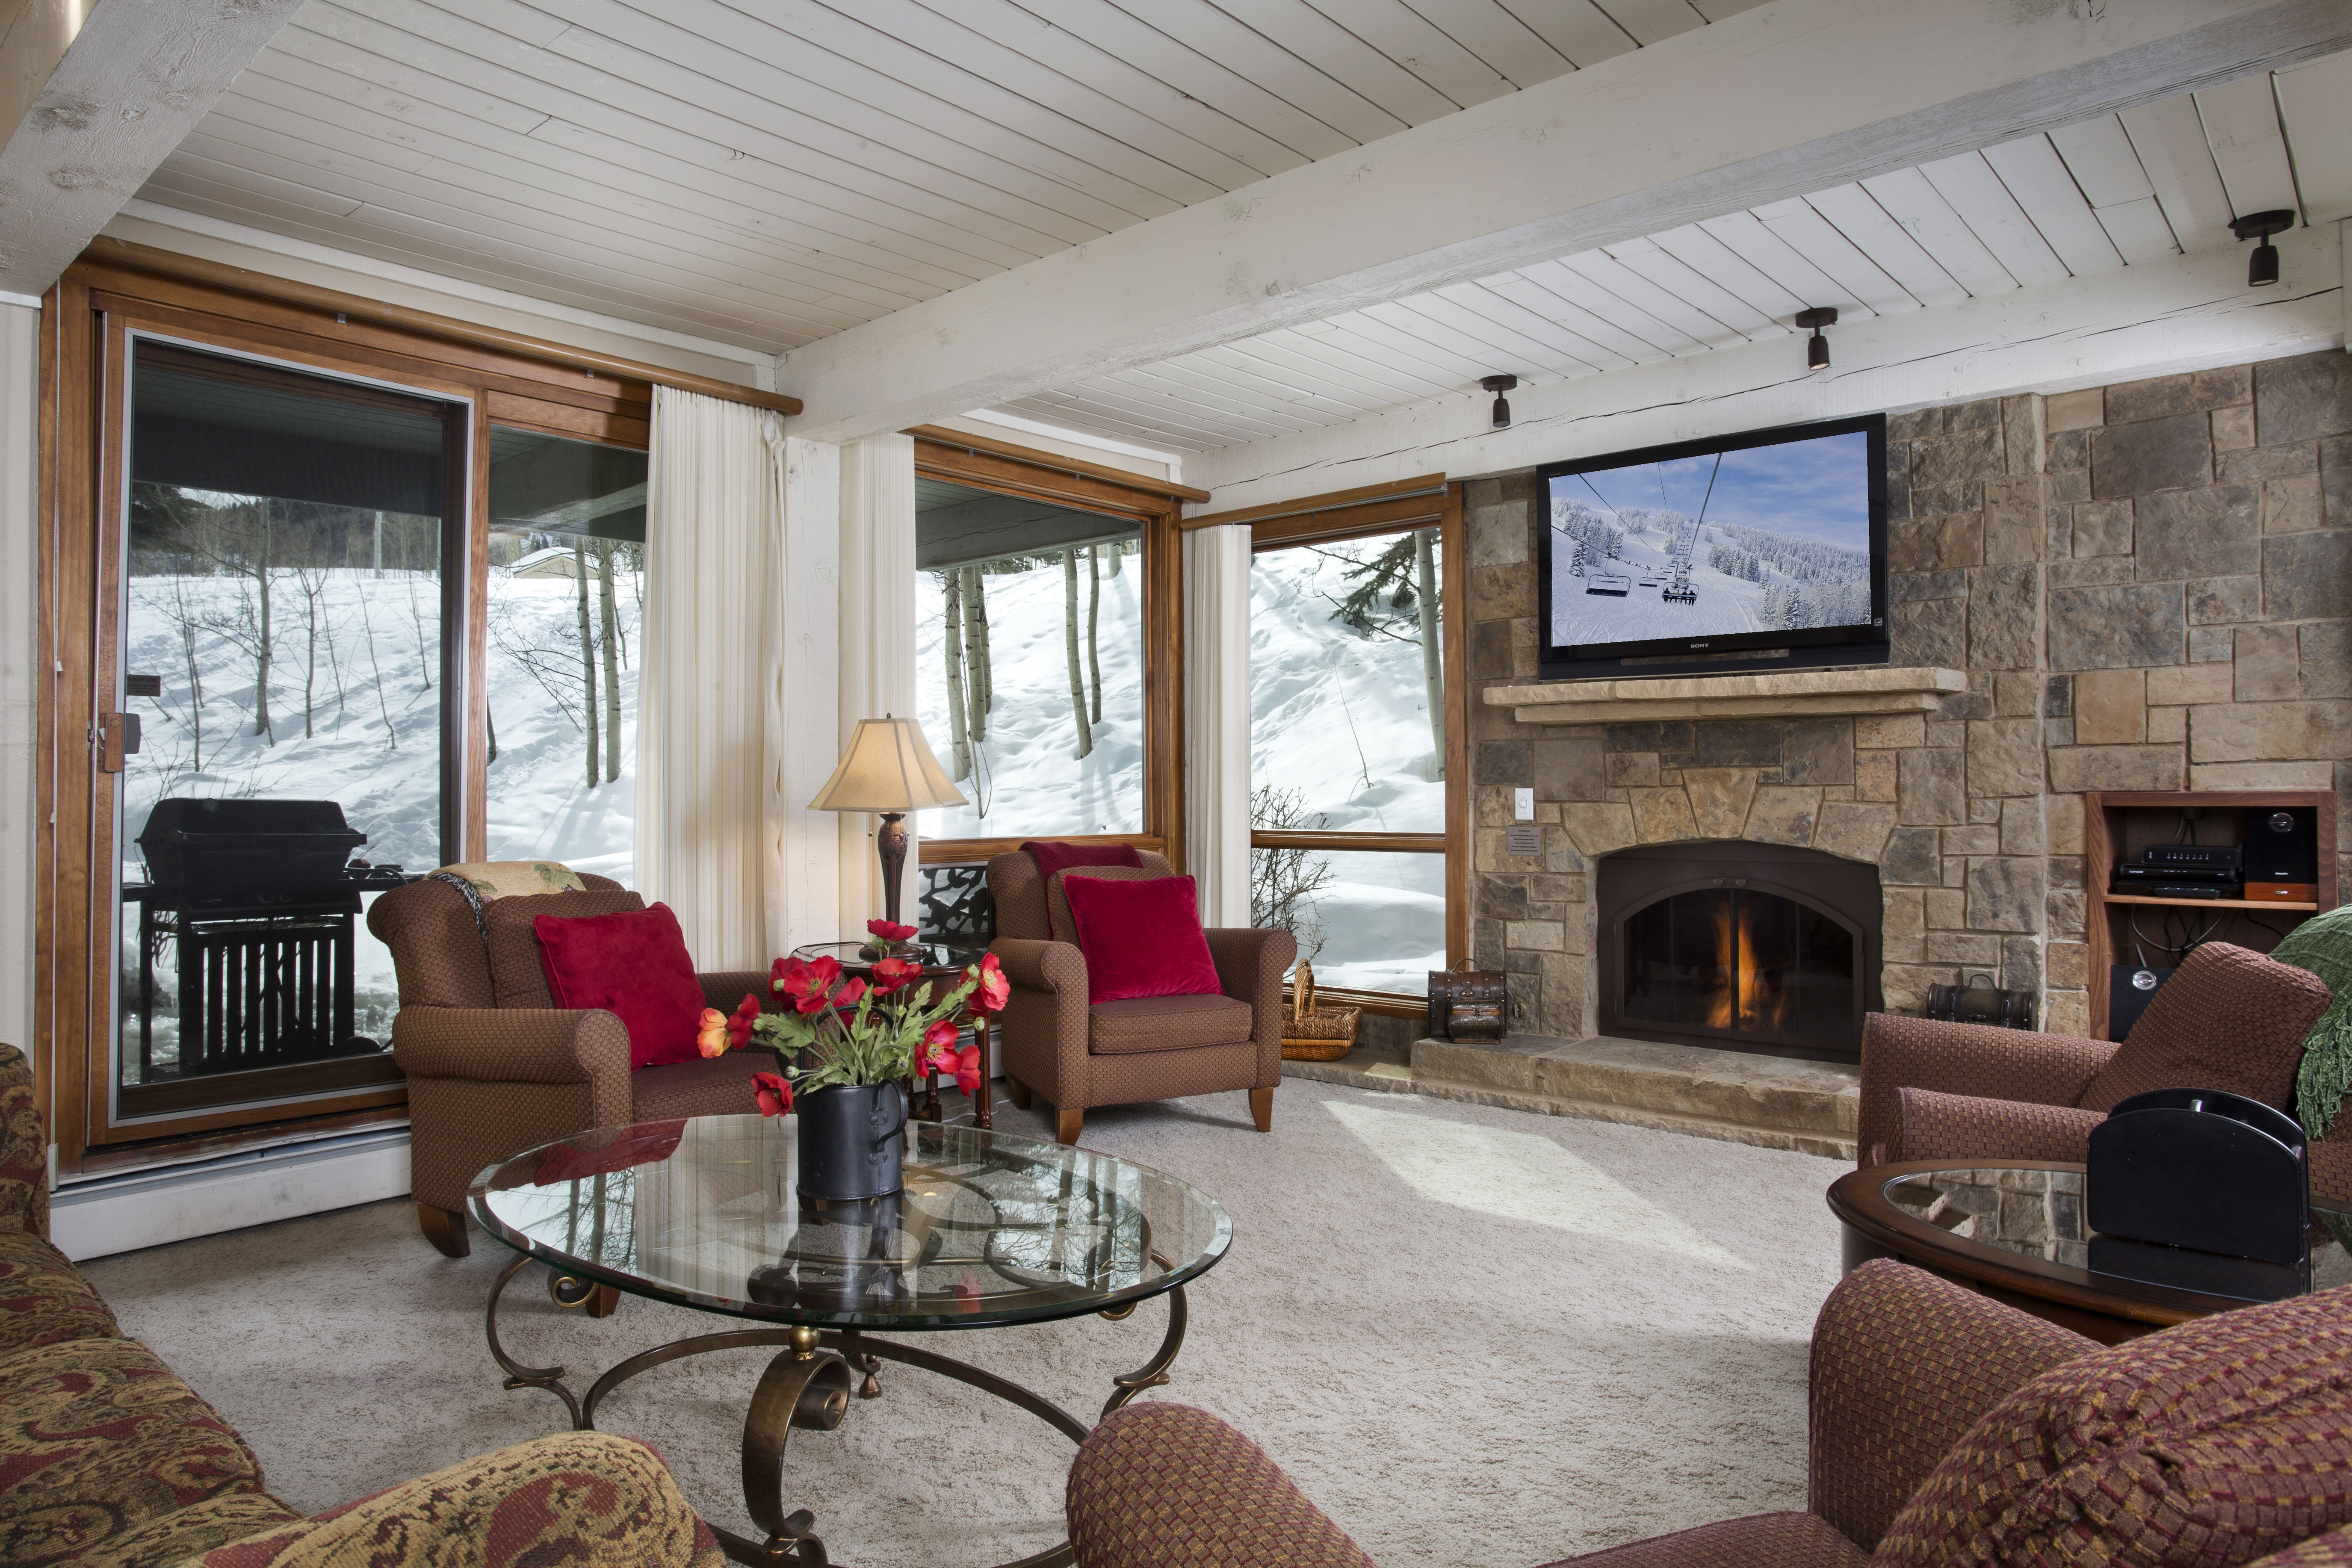 Condominium for Sale at Top of the Village Aspen Trails 109 855 Carriage Way Aspen Trails #109 Snowmass Village, Colorado 81615 United States